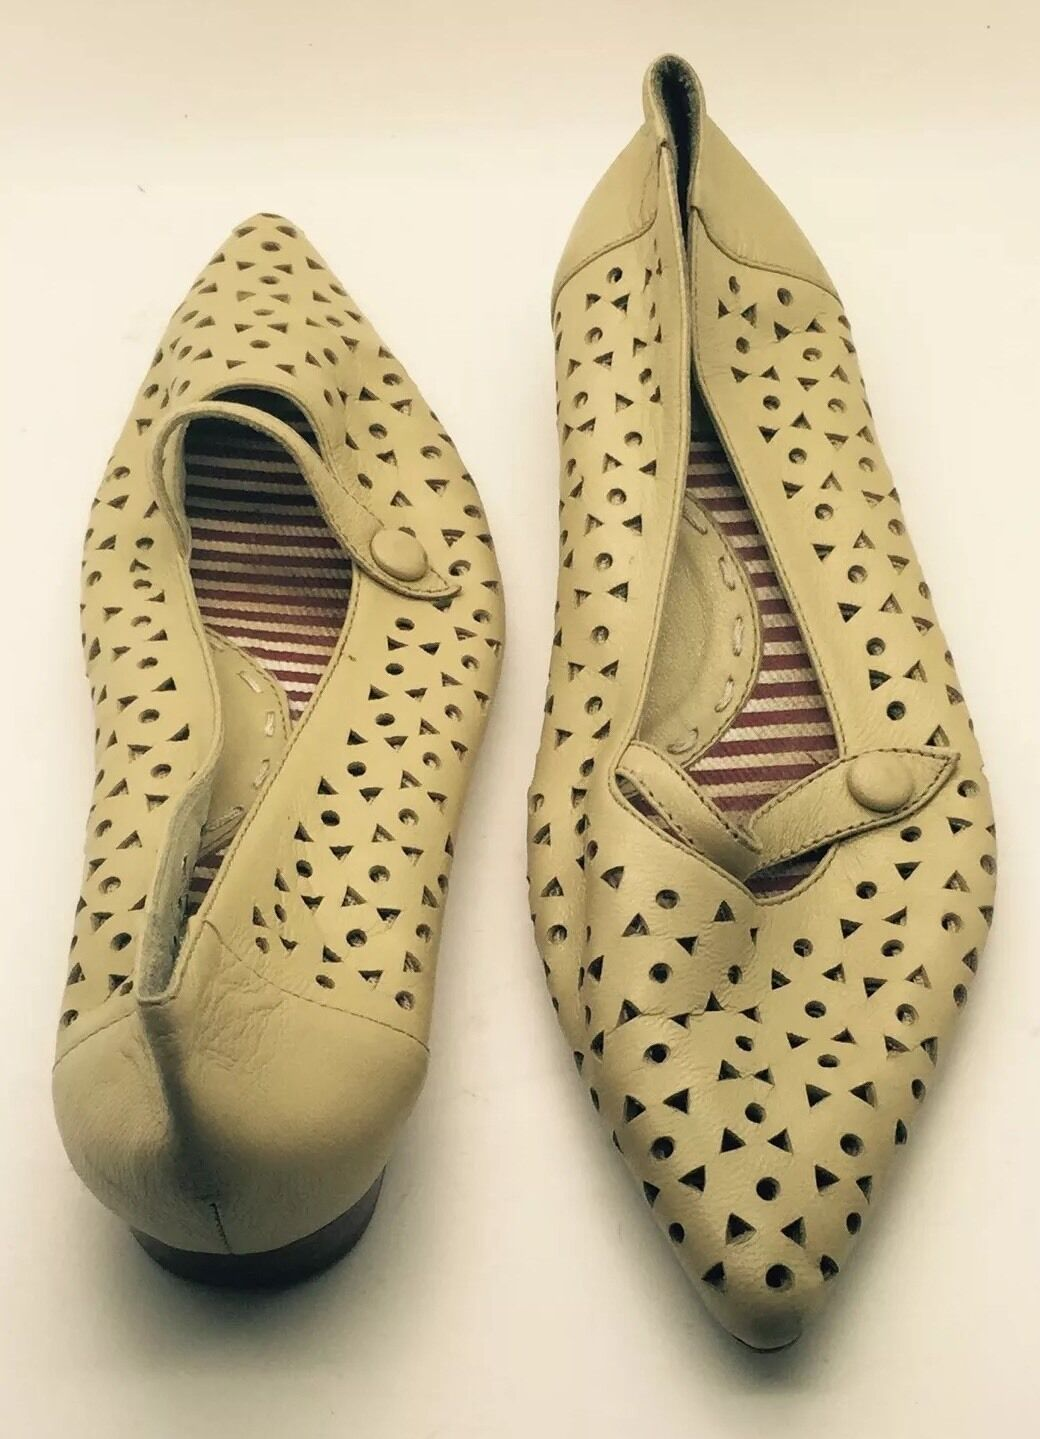 FOUNDATION Cream Cream Cream Yellow Leather Triangle Design Mary Jane Ballet Flats 35M  cd607d